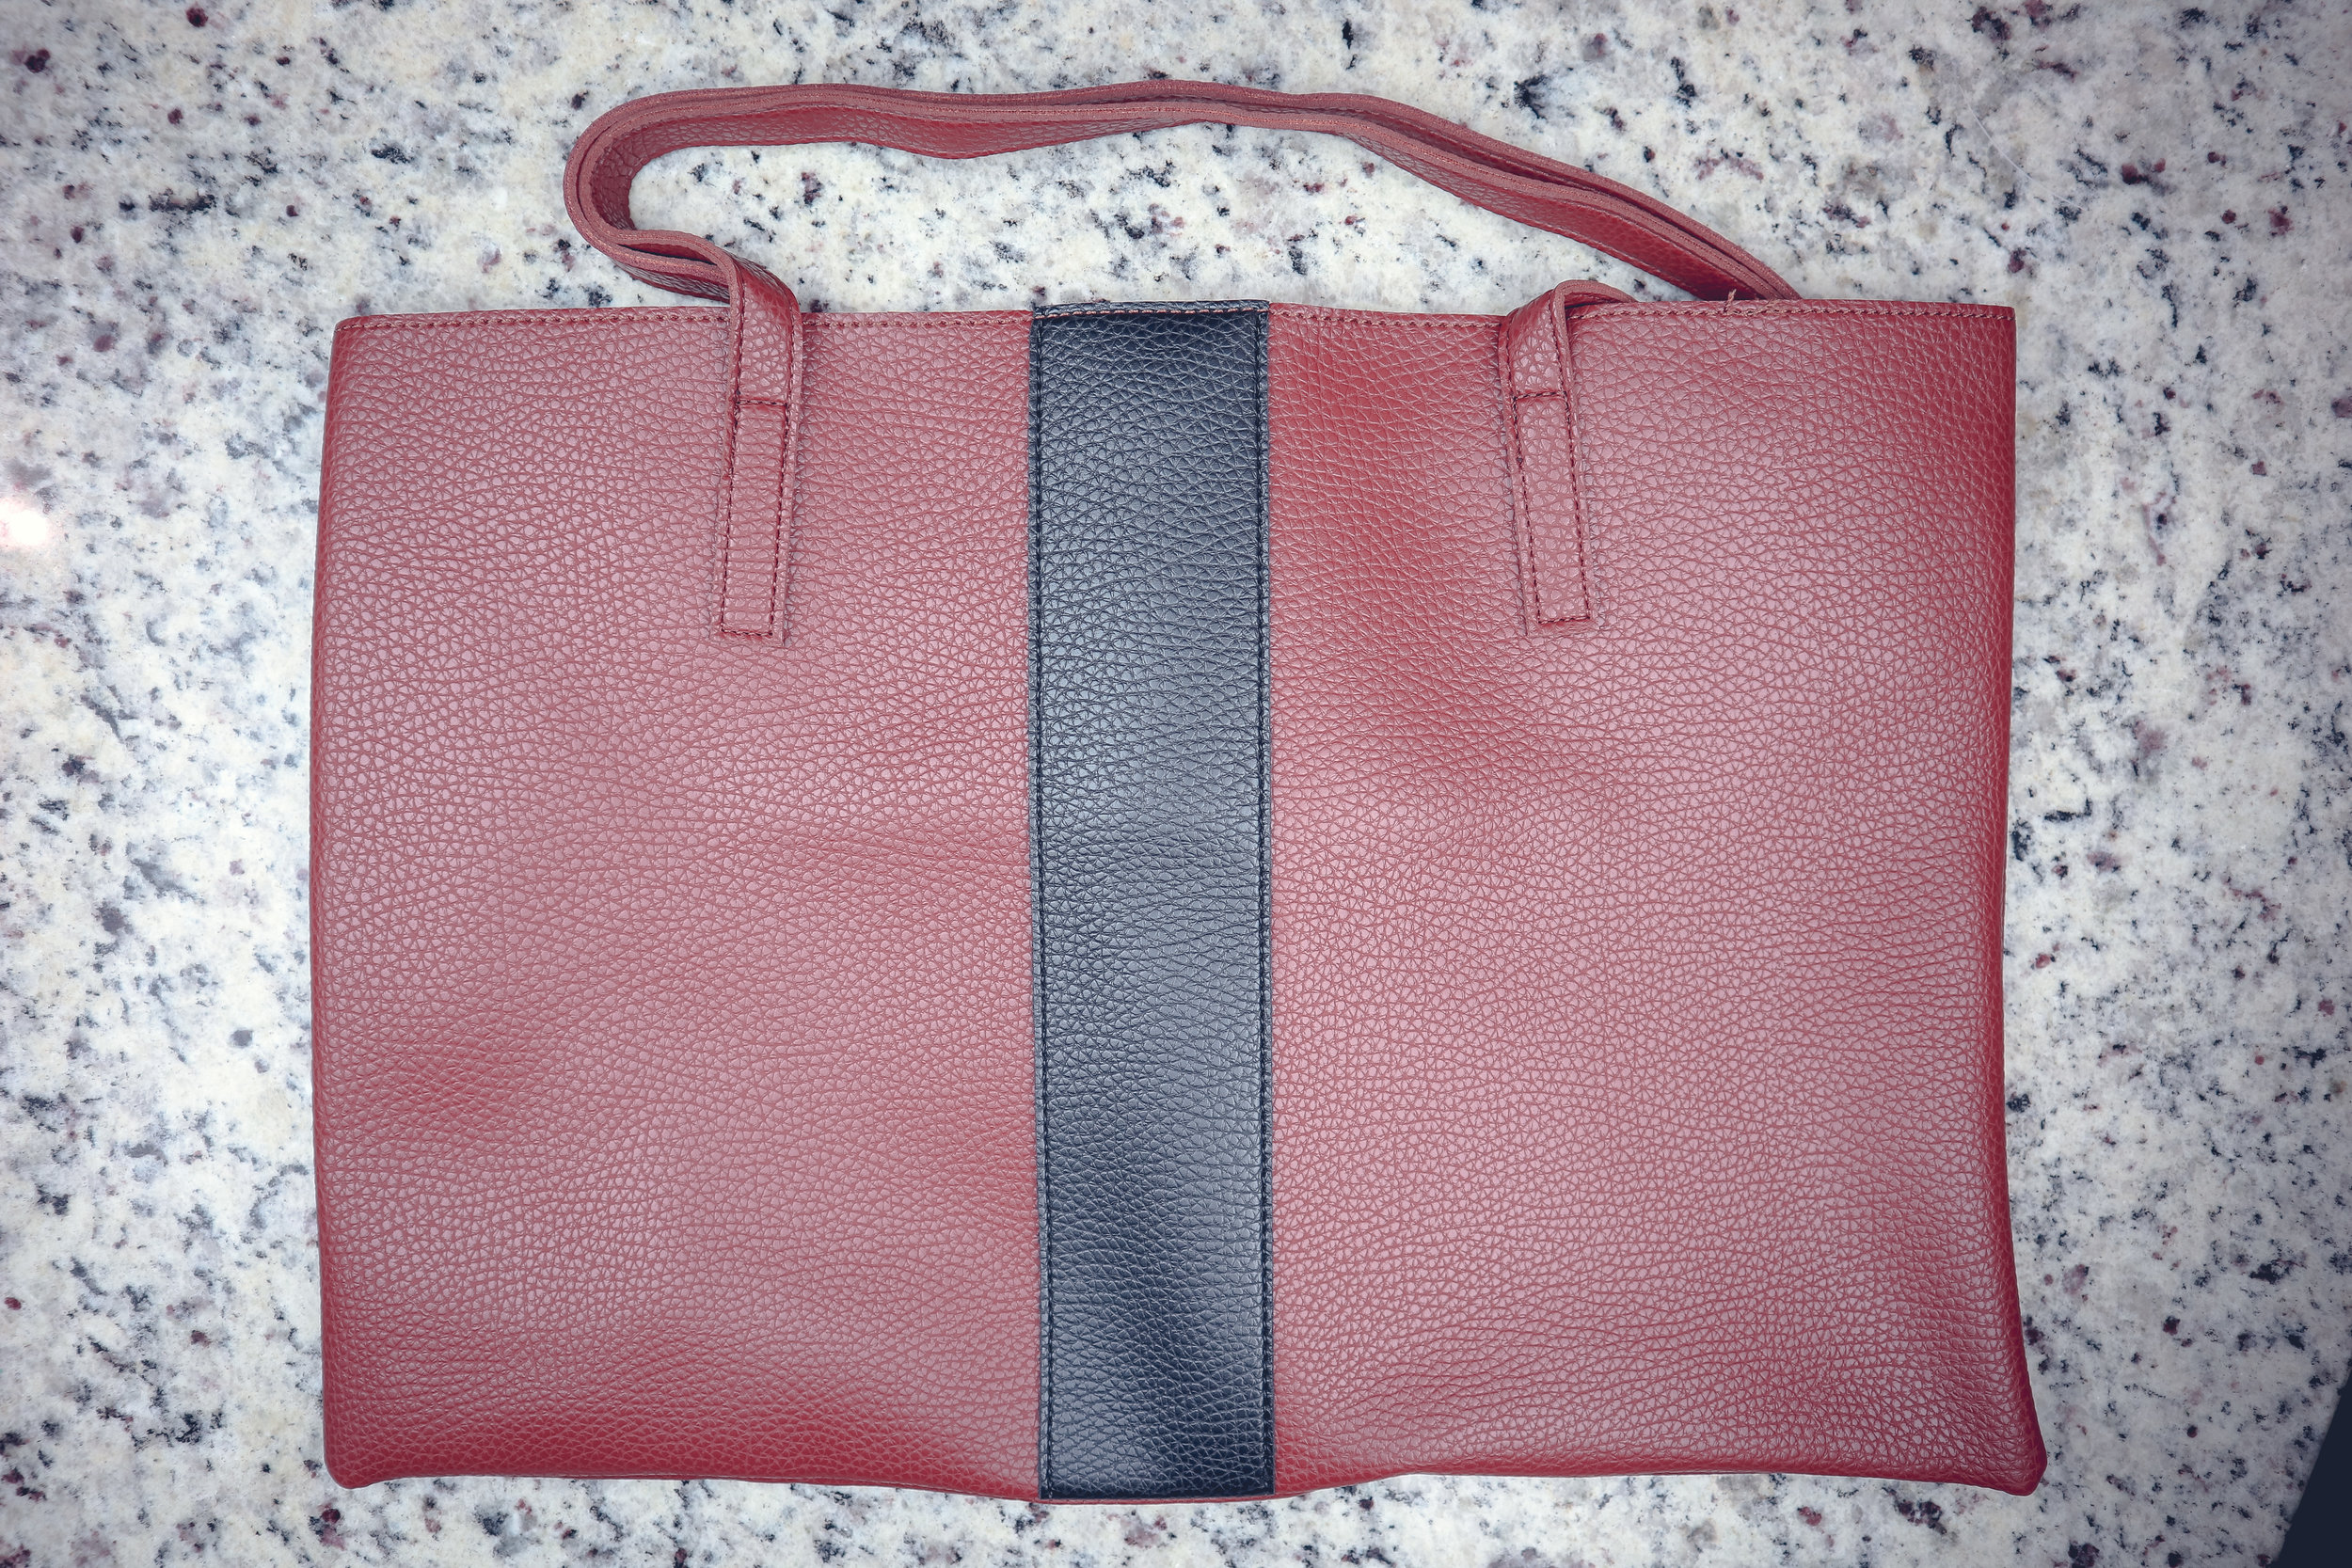 VINCE CAMUTO LUCK TOTE ($128) - I take this Tote EVERYWHERE! Color: Red Desert